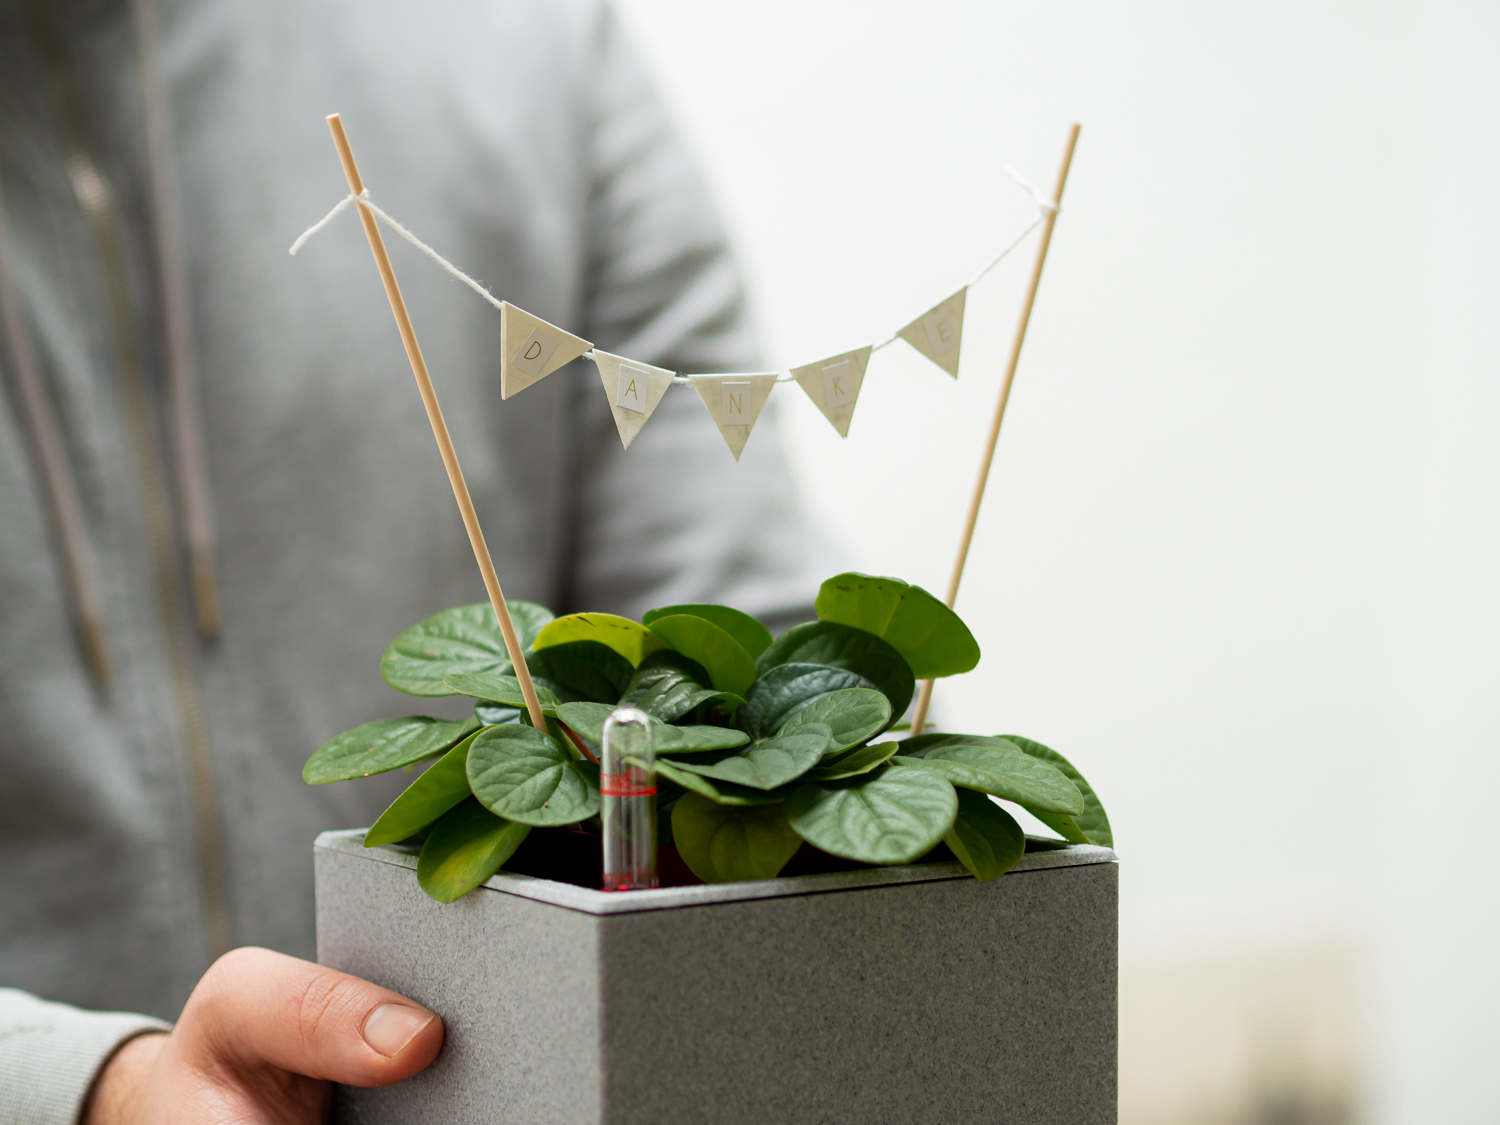 DIY Planttopper